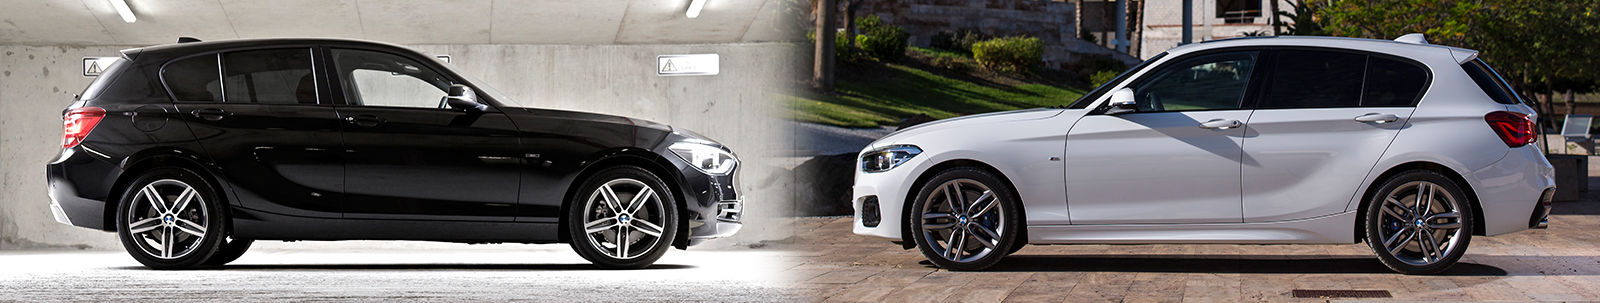 2015 bmw 1 series facelift old vs new compared carwow